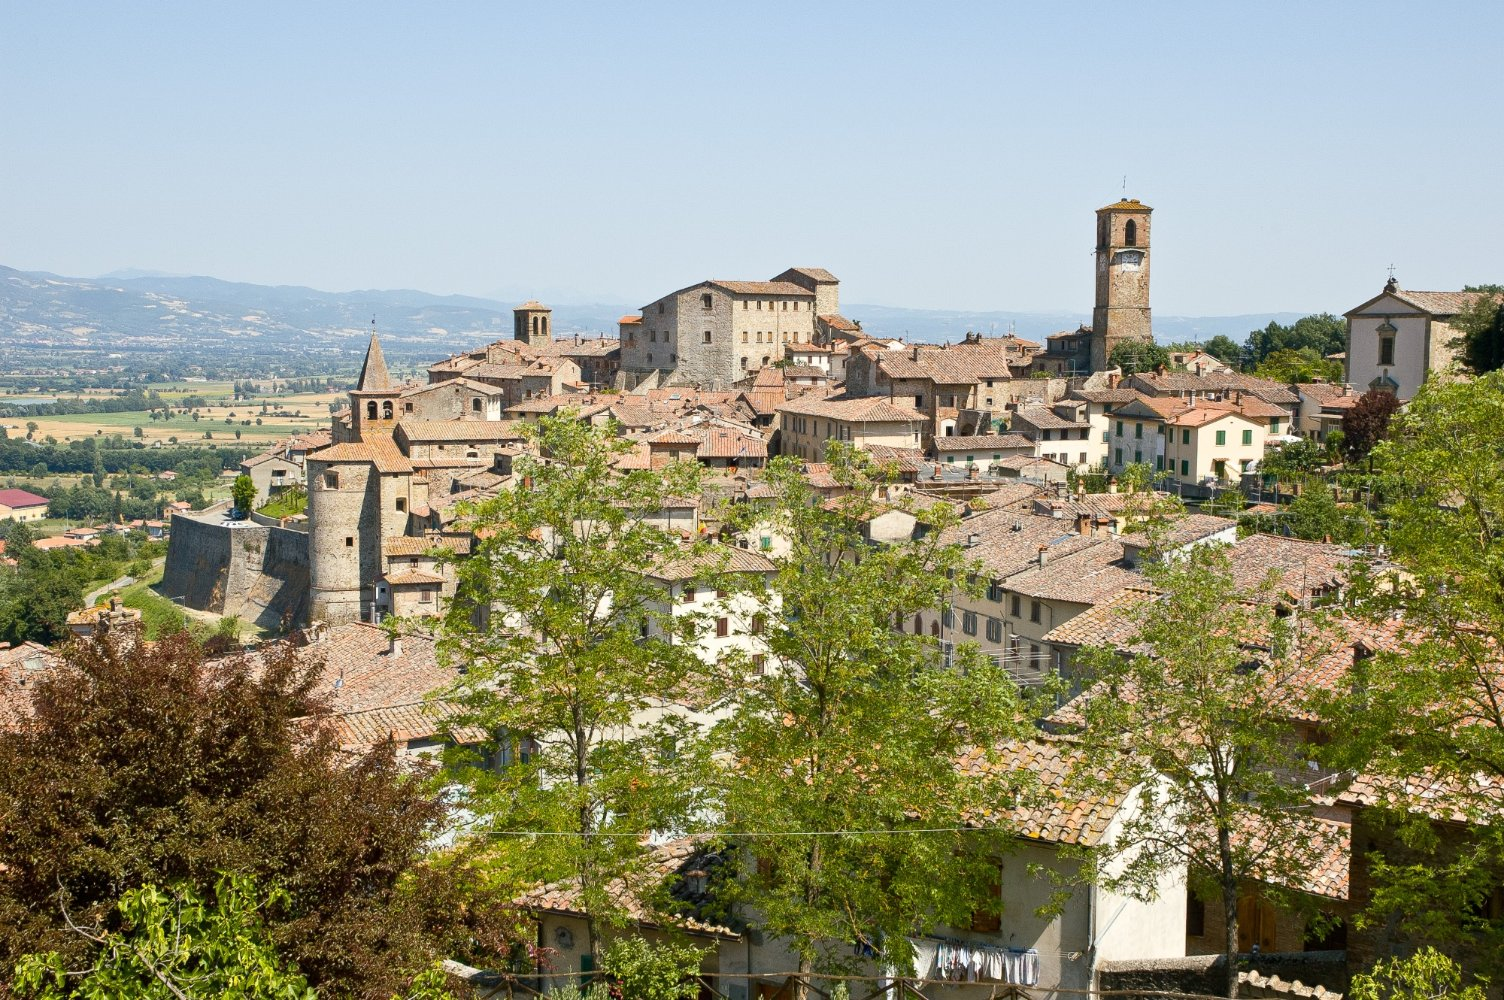 10 small towns in the Arezzo area | Visit Tuscany on map of ancona italy, map of tarquinia italy, map of tuscany italy, map of venice italy, map of trieste italy, map of sicily italy, map of lanciano italy, map of livorno italy, map of puglia italy, map of spello italy, map of ravenna italy, map of caserta italy, map of civitavecchia italy, map of orvieto italy, map of milazzo italy, map of europe italy, map of sardinia italy, map of cetona italy, map of campobasso italy, map of norcia italy,